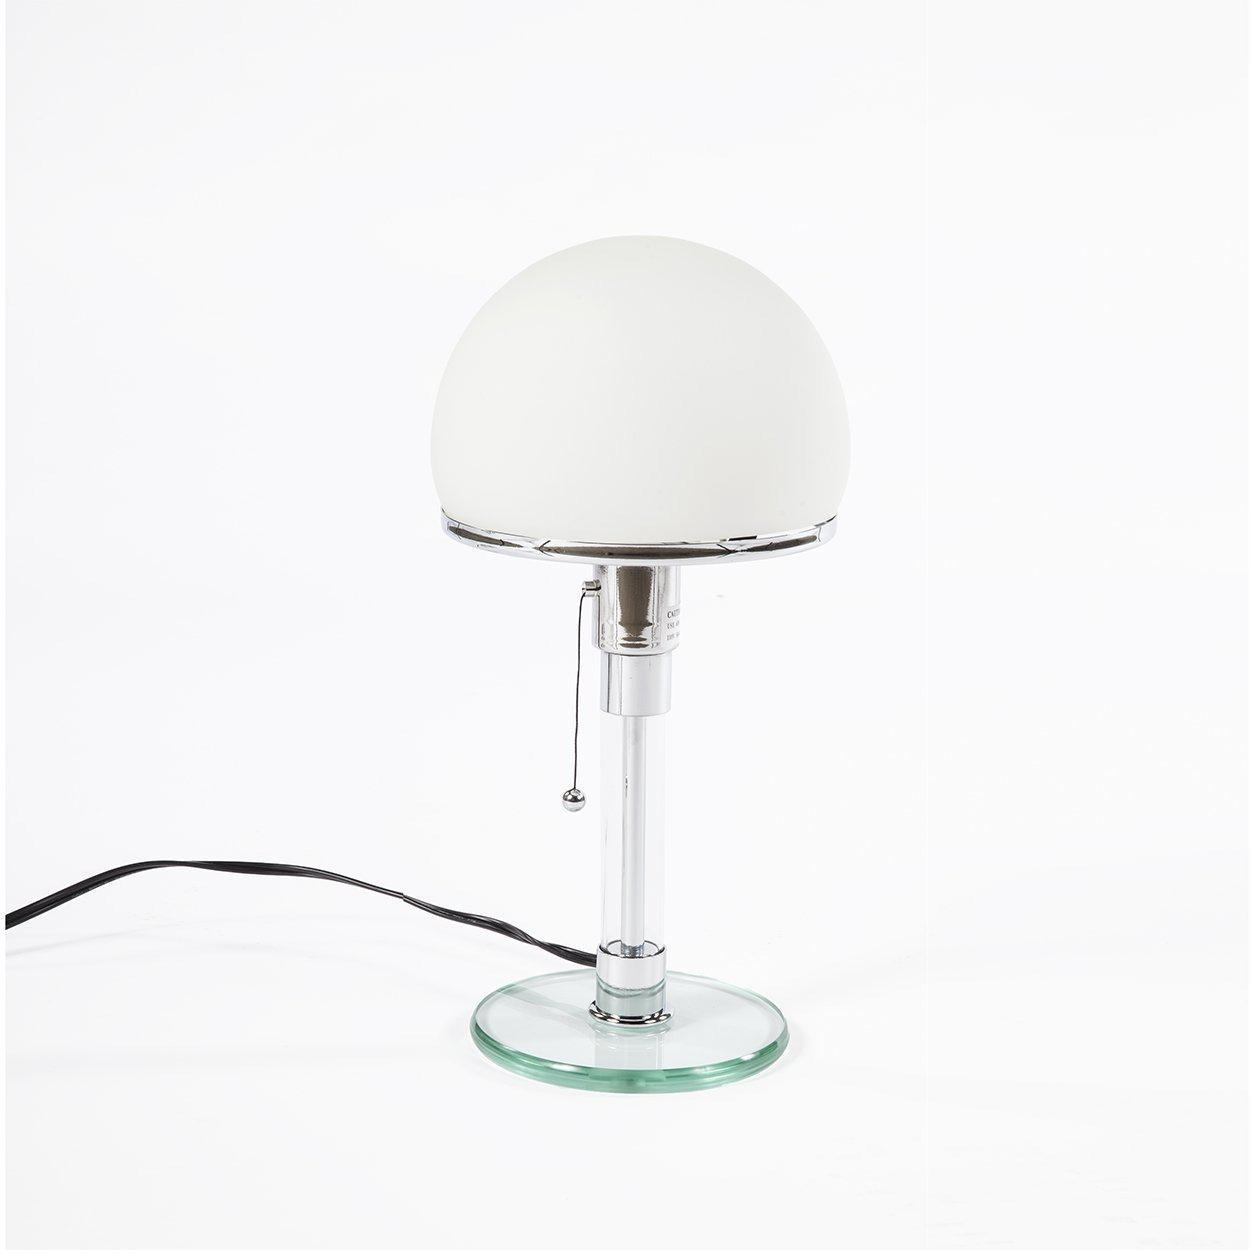 [LBT006NEW] The Bauhaus Table Lamp